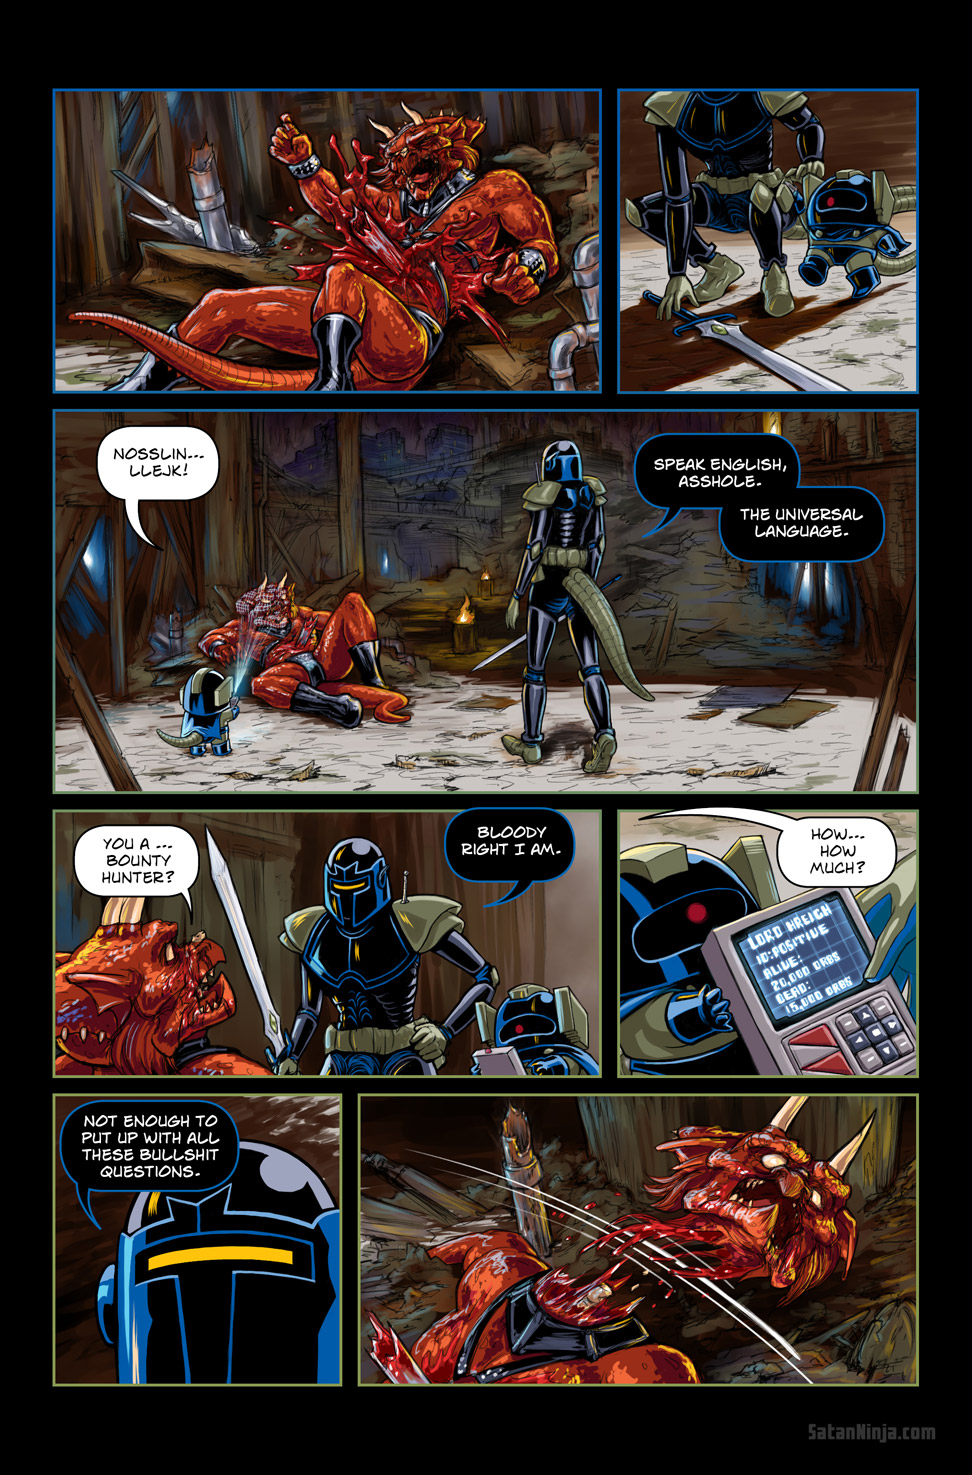 Issue 2, Page 5 - Lord Hreig